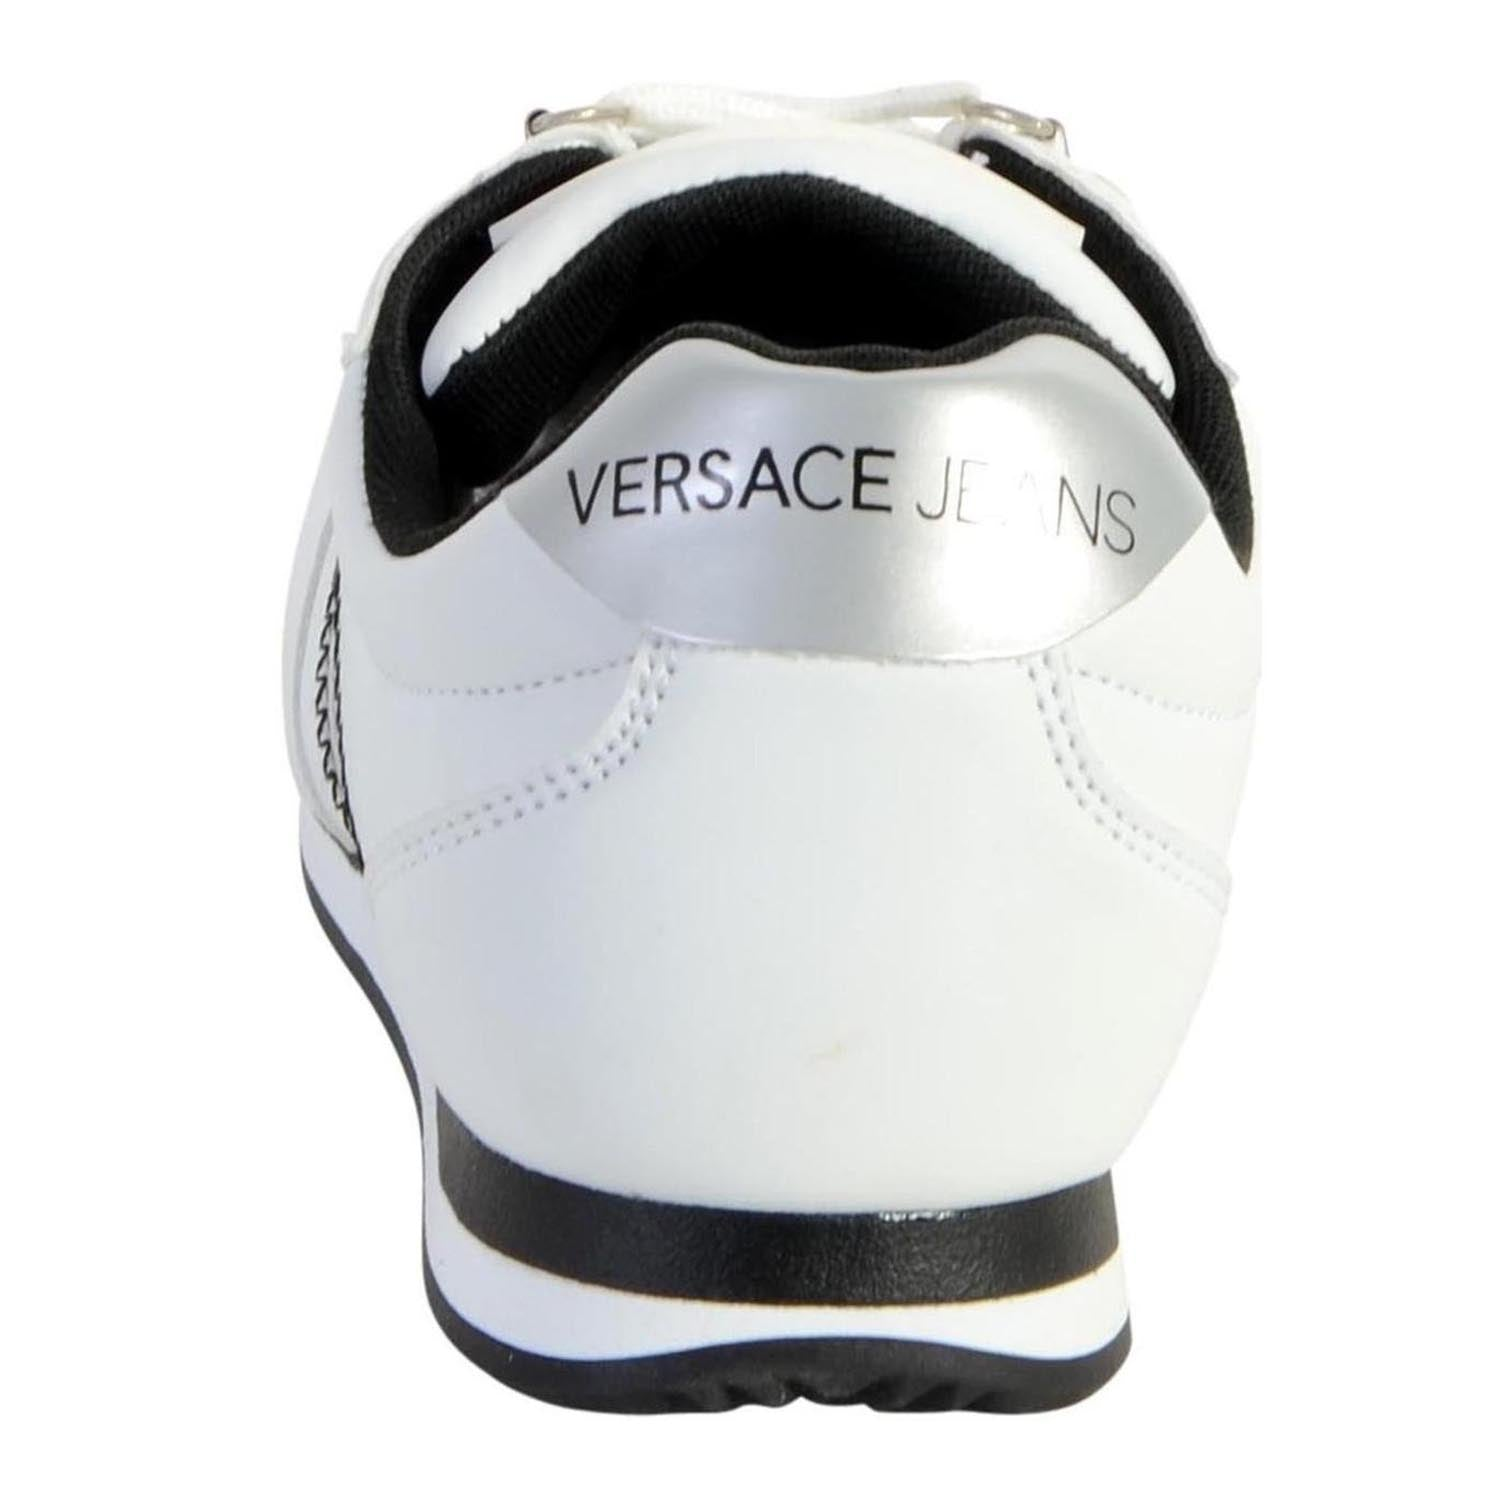 Versace Jeans Stripe Detail Low Top Trainer